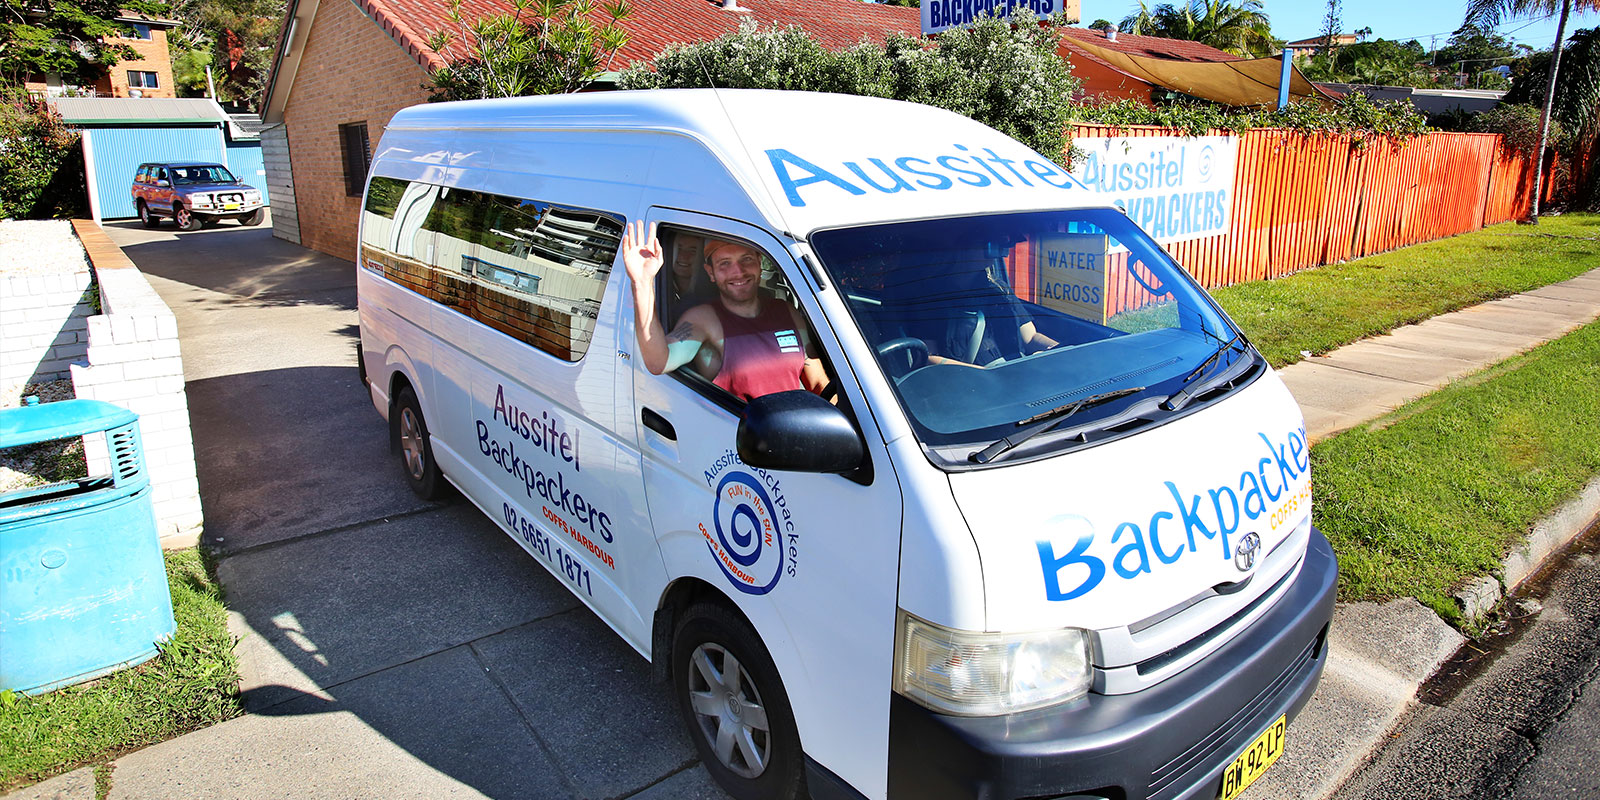 Aussitel Backpackers Transport